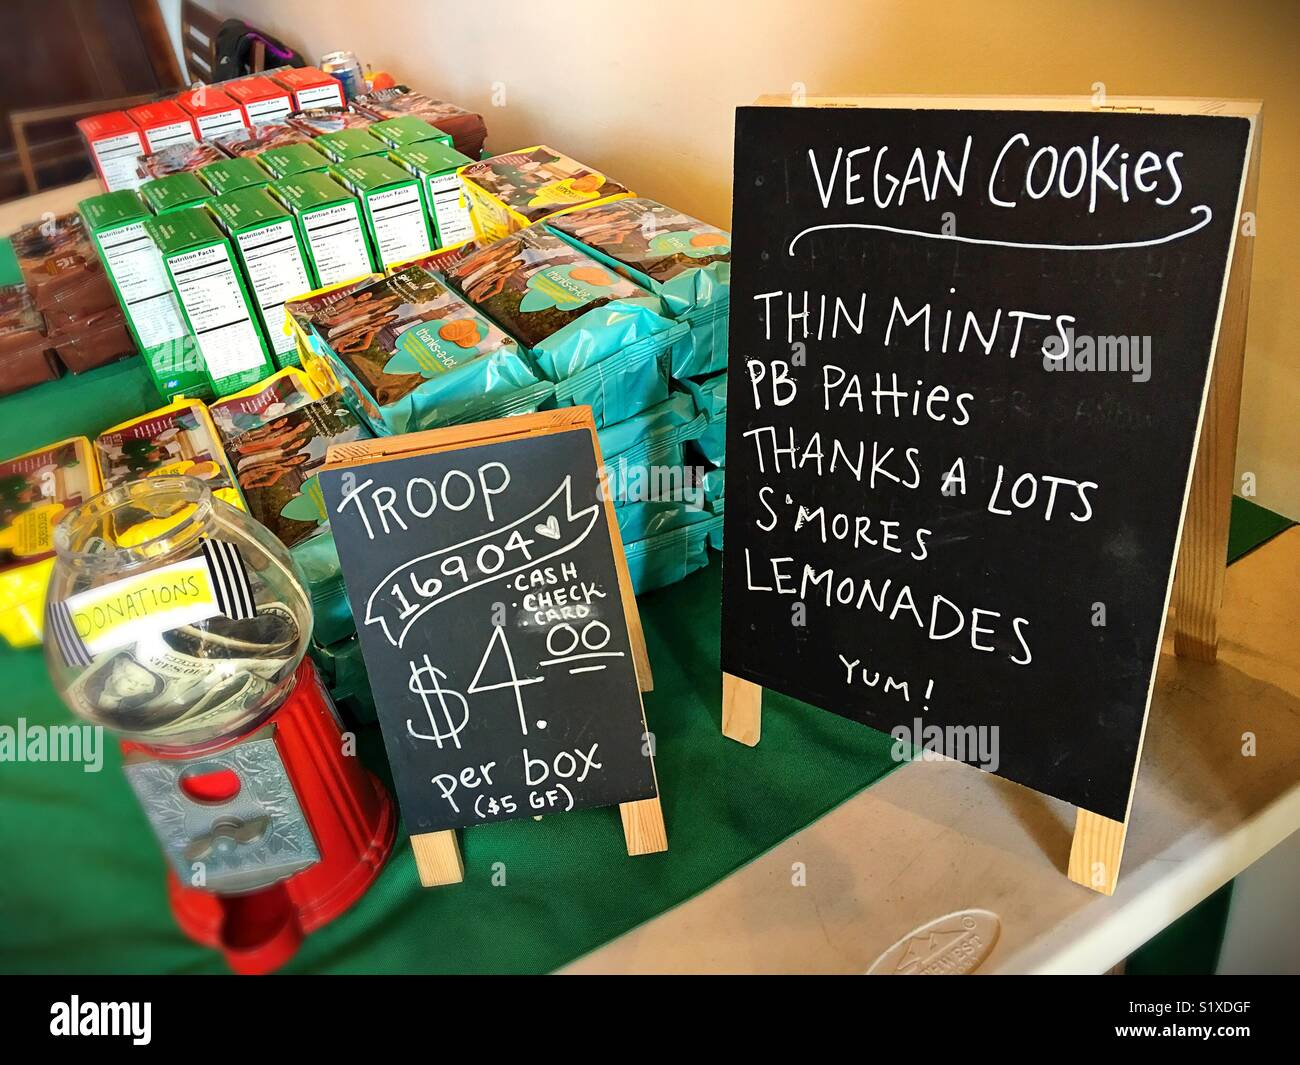 A vegan Girl Scout cookies sale. - Stock Image